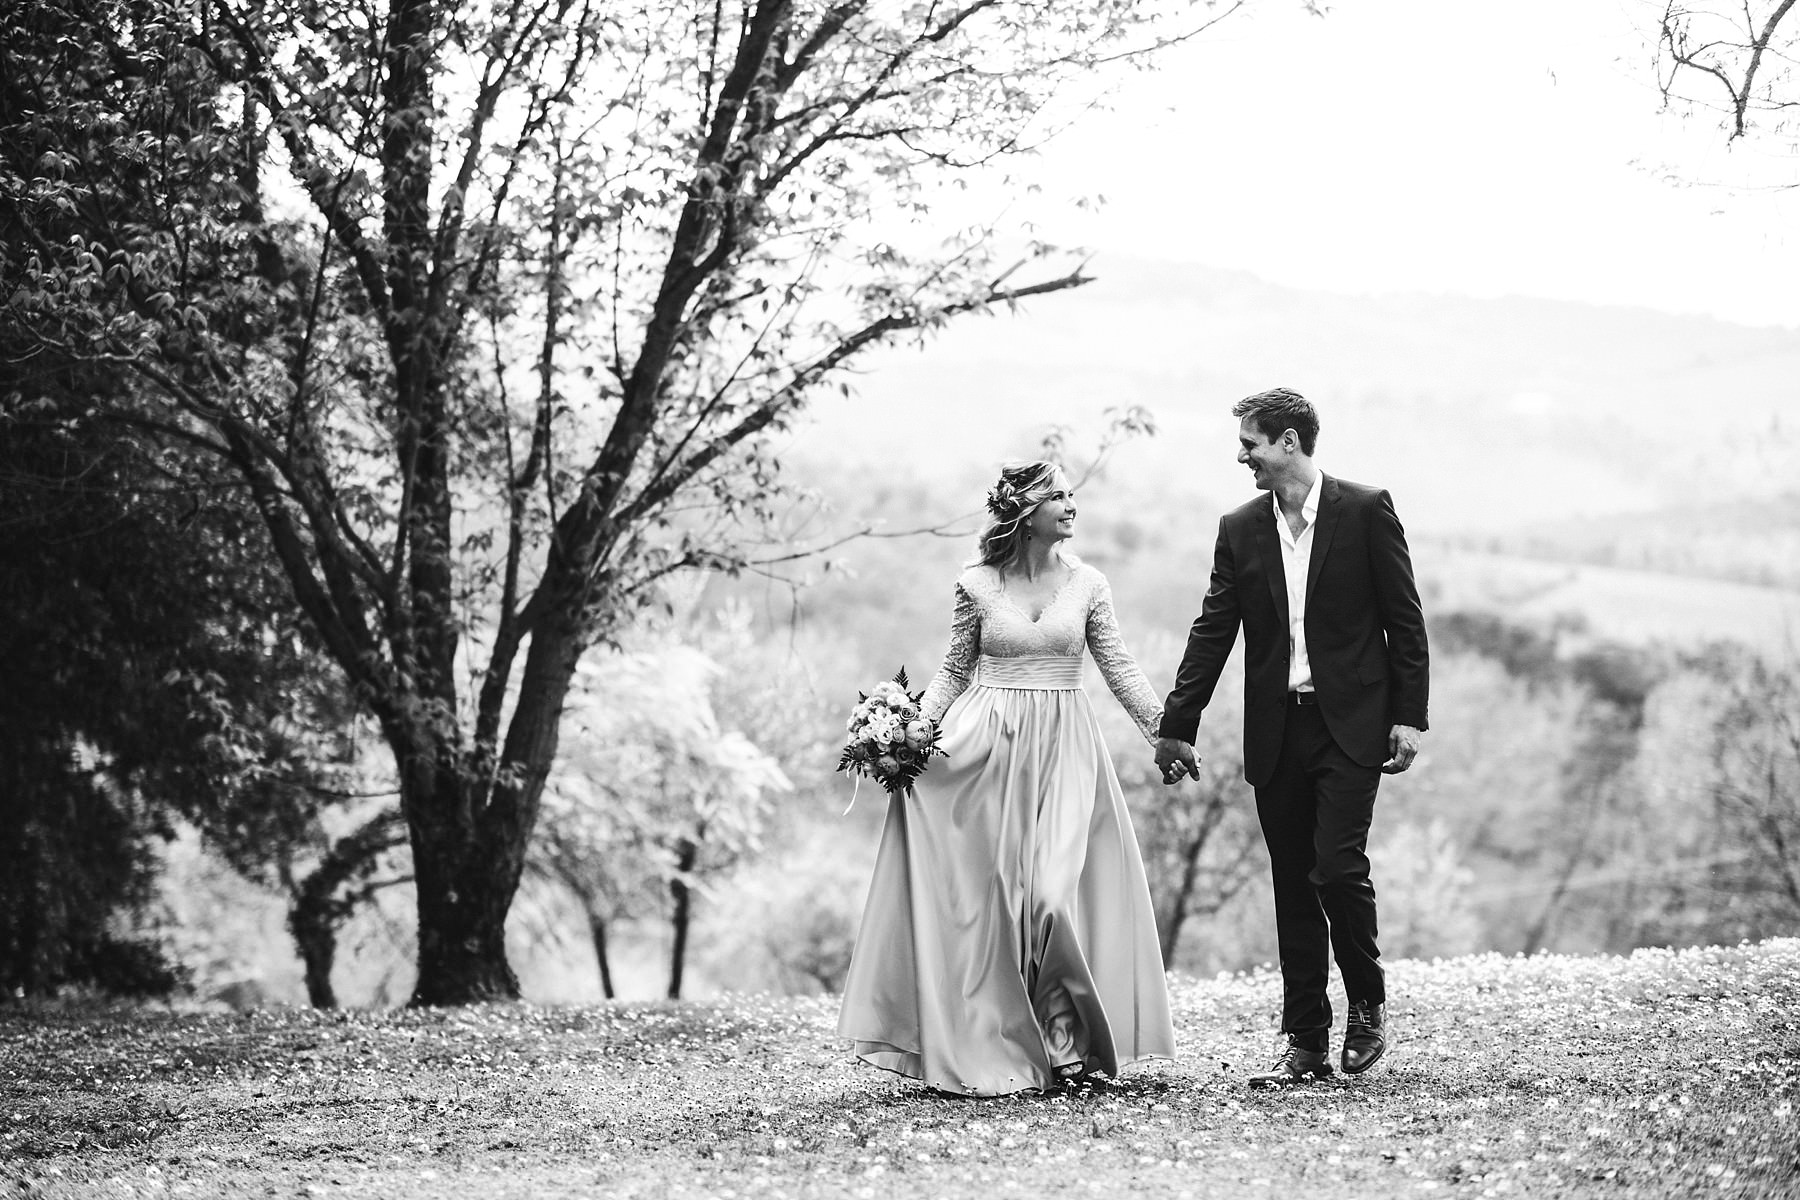 Elegant and beautiful couple portrait photo in Tuscany at Tenuta Nozzole in Chiantishire